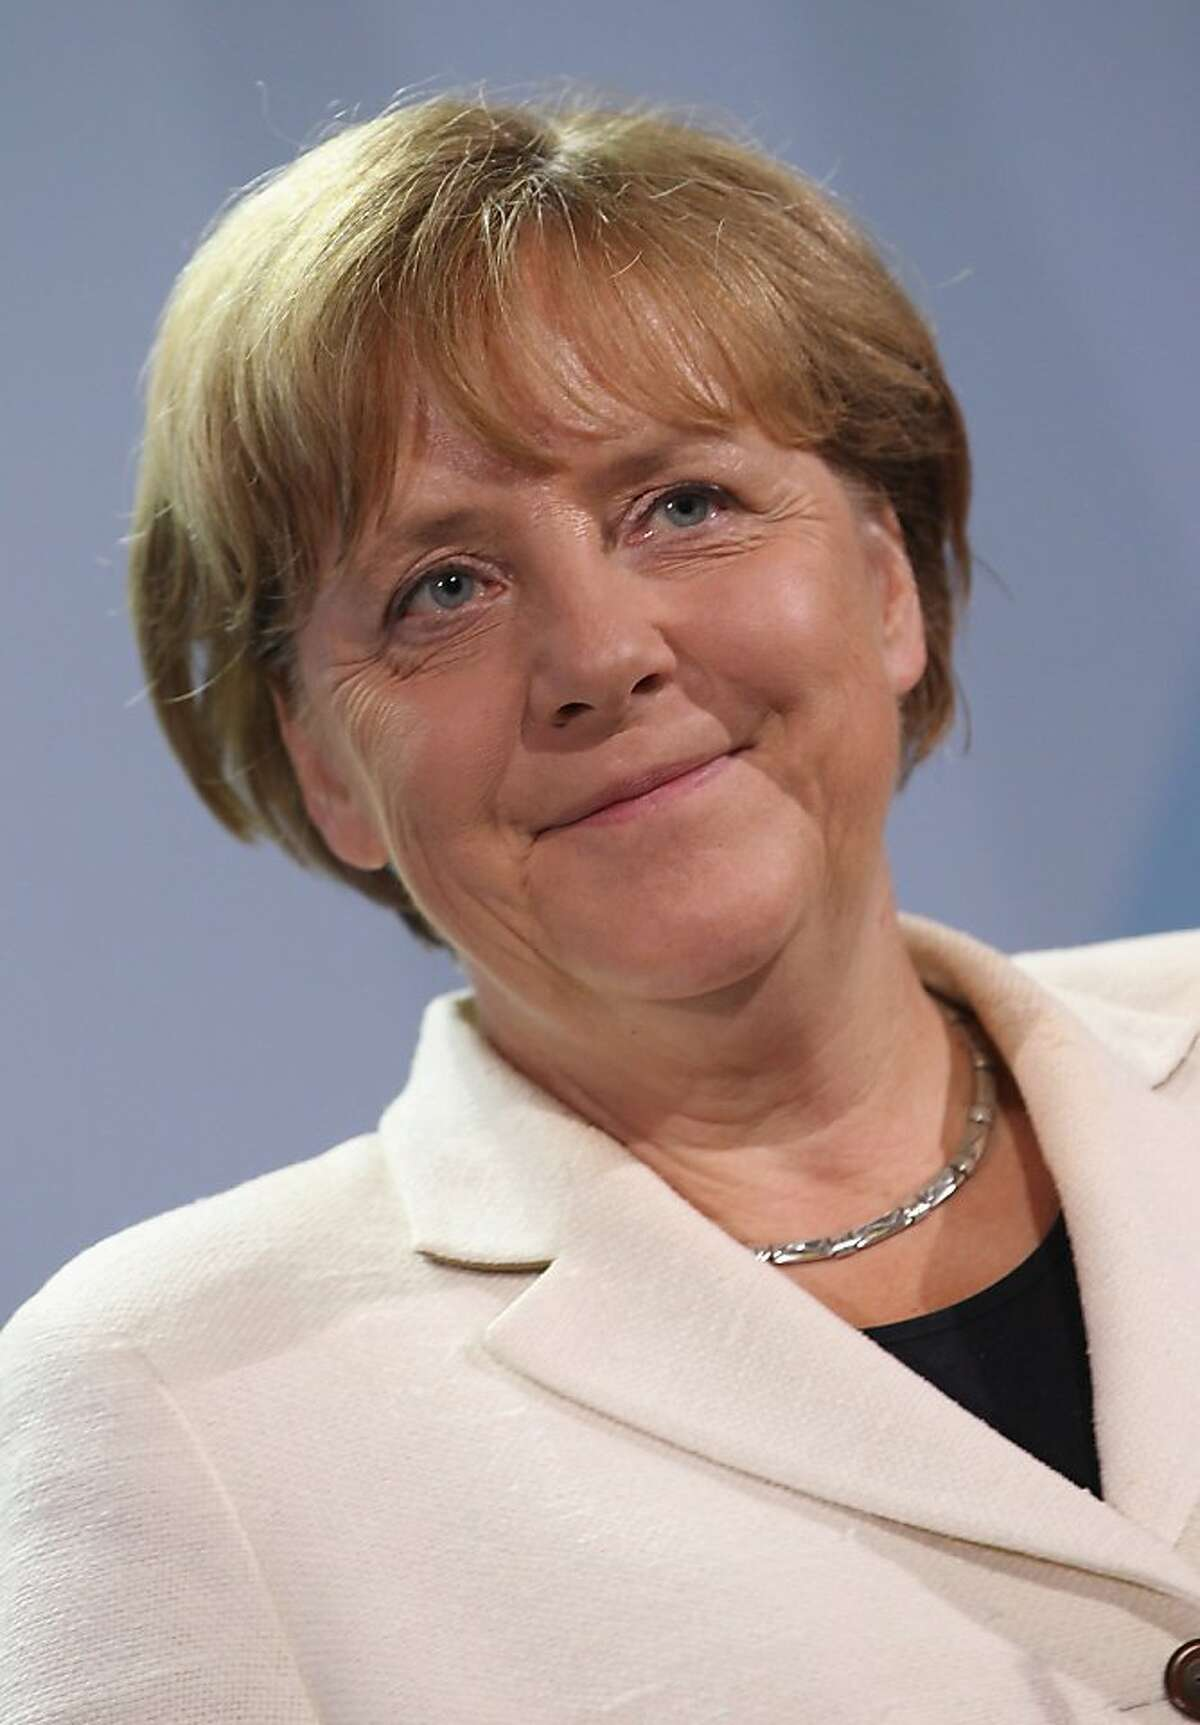 BERLIN, GERMANY - SEPTEMBER 27: German Chancellor Angela Merkel speaks to the media prior to talks with Greek Prime Minister George Papandreou at the Chancellery on September 27, 2011 in Berlin, Germany. The two leaders are meeting to discuss the current Greek debt crisis that is threatening the stability of the Euro two days before the Bundestag is scheduled to vote on an increase in funding for the European Financial Stability Facility (EFSF). (Photo by Sean Gallup/Getty Images)